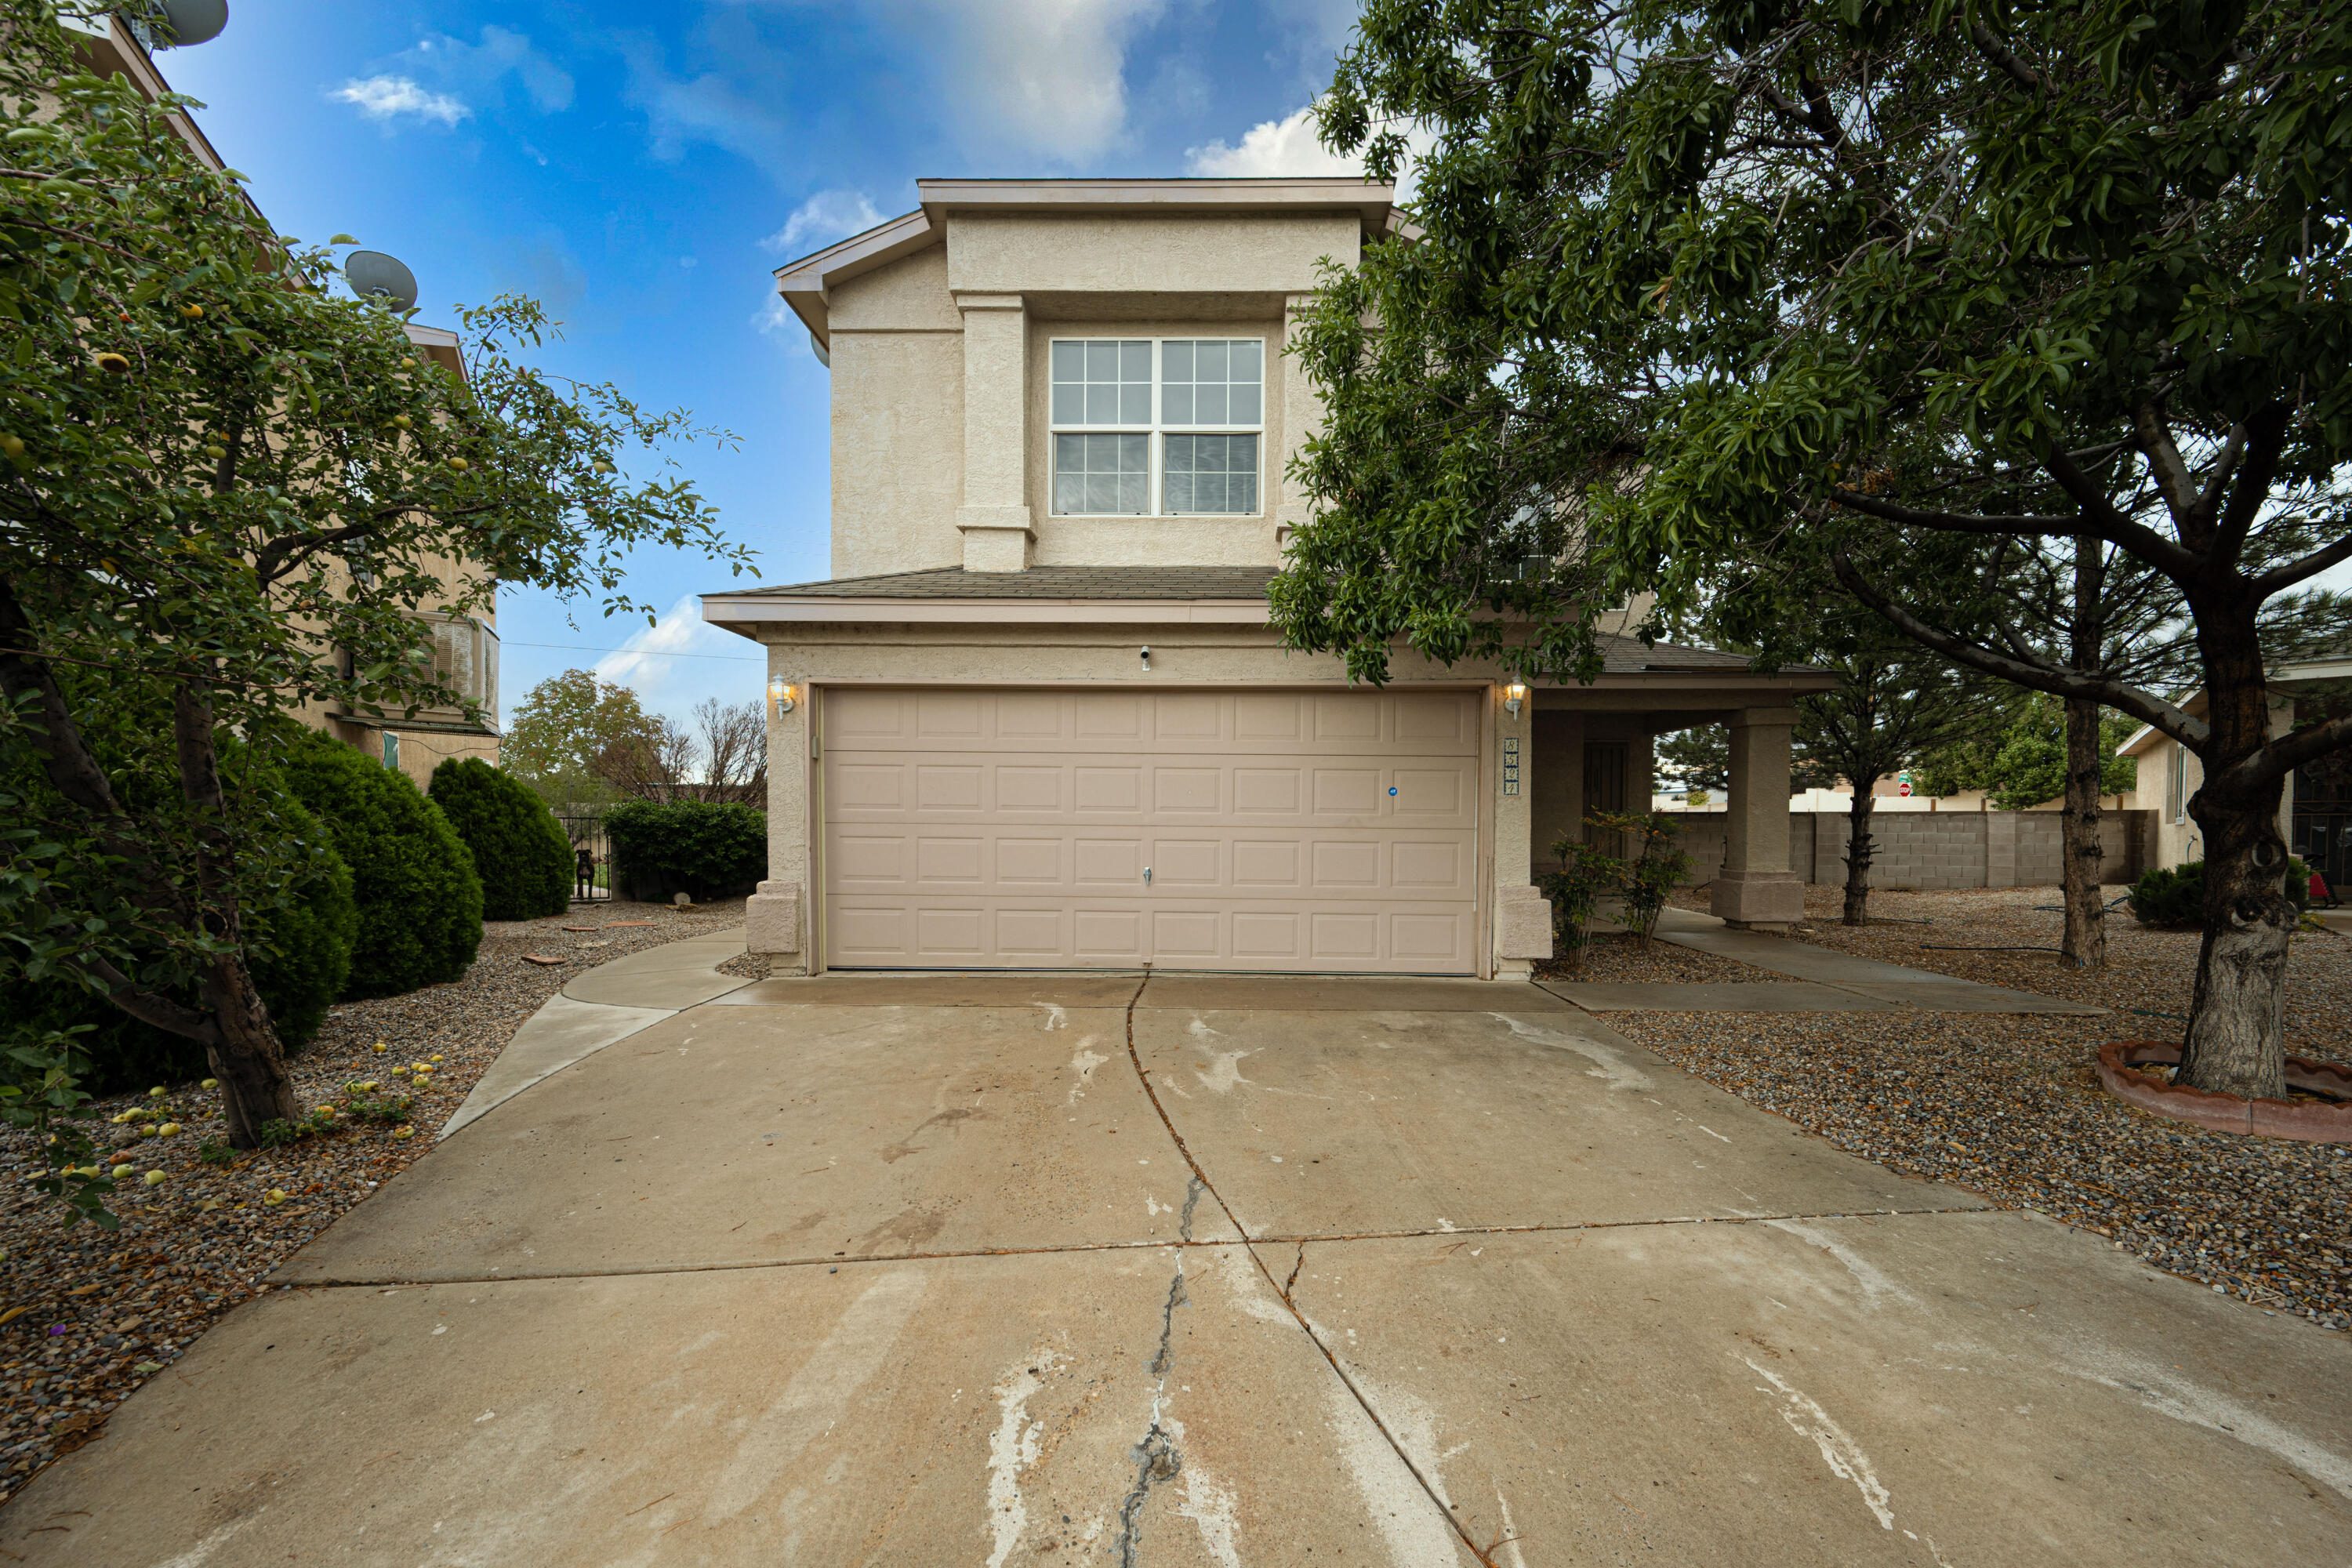 Great opportunity to make this home yours! This property has so much to offer, located in a gated community on one of the largest lots in the neighborhood! Inside you will find 2 living areas, granite counter tops, 3 bedrooms and a balcony off the master! Refrigerated air and parks close by. Call to schedule your showing today!